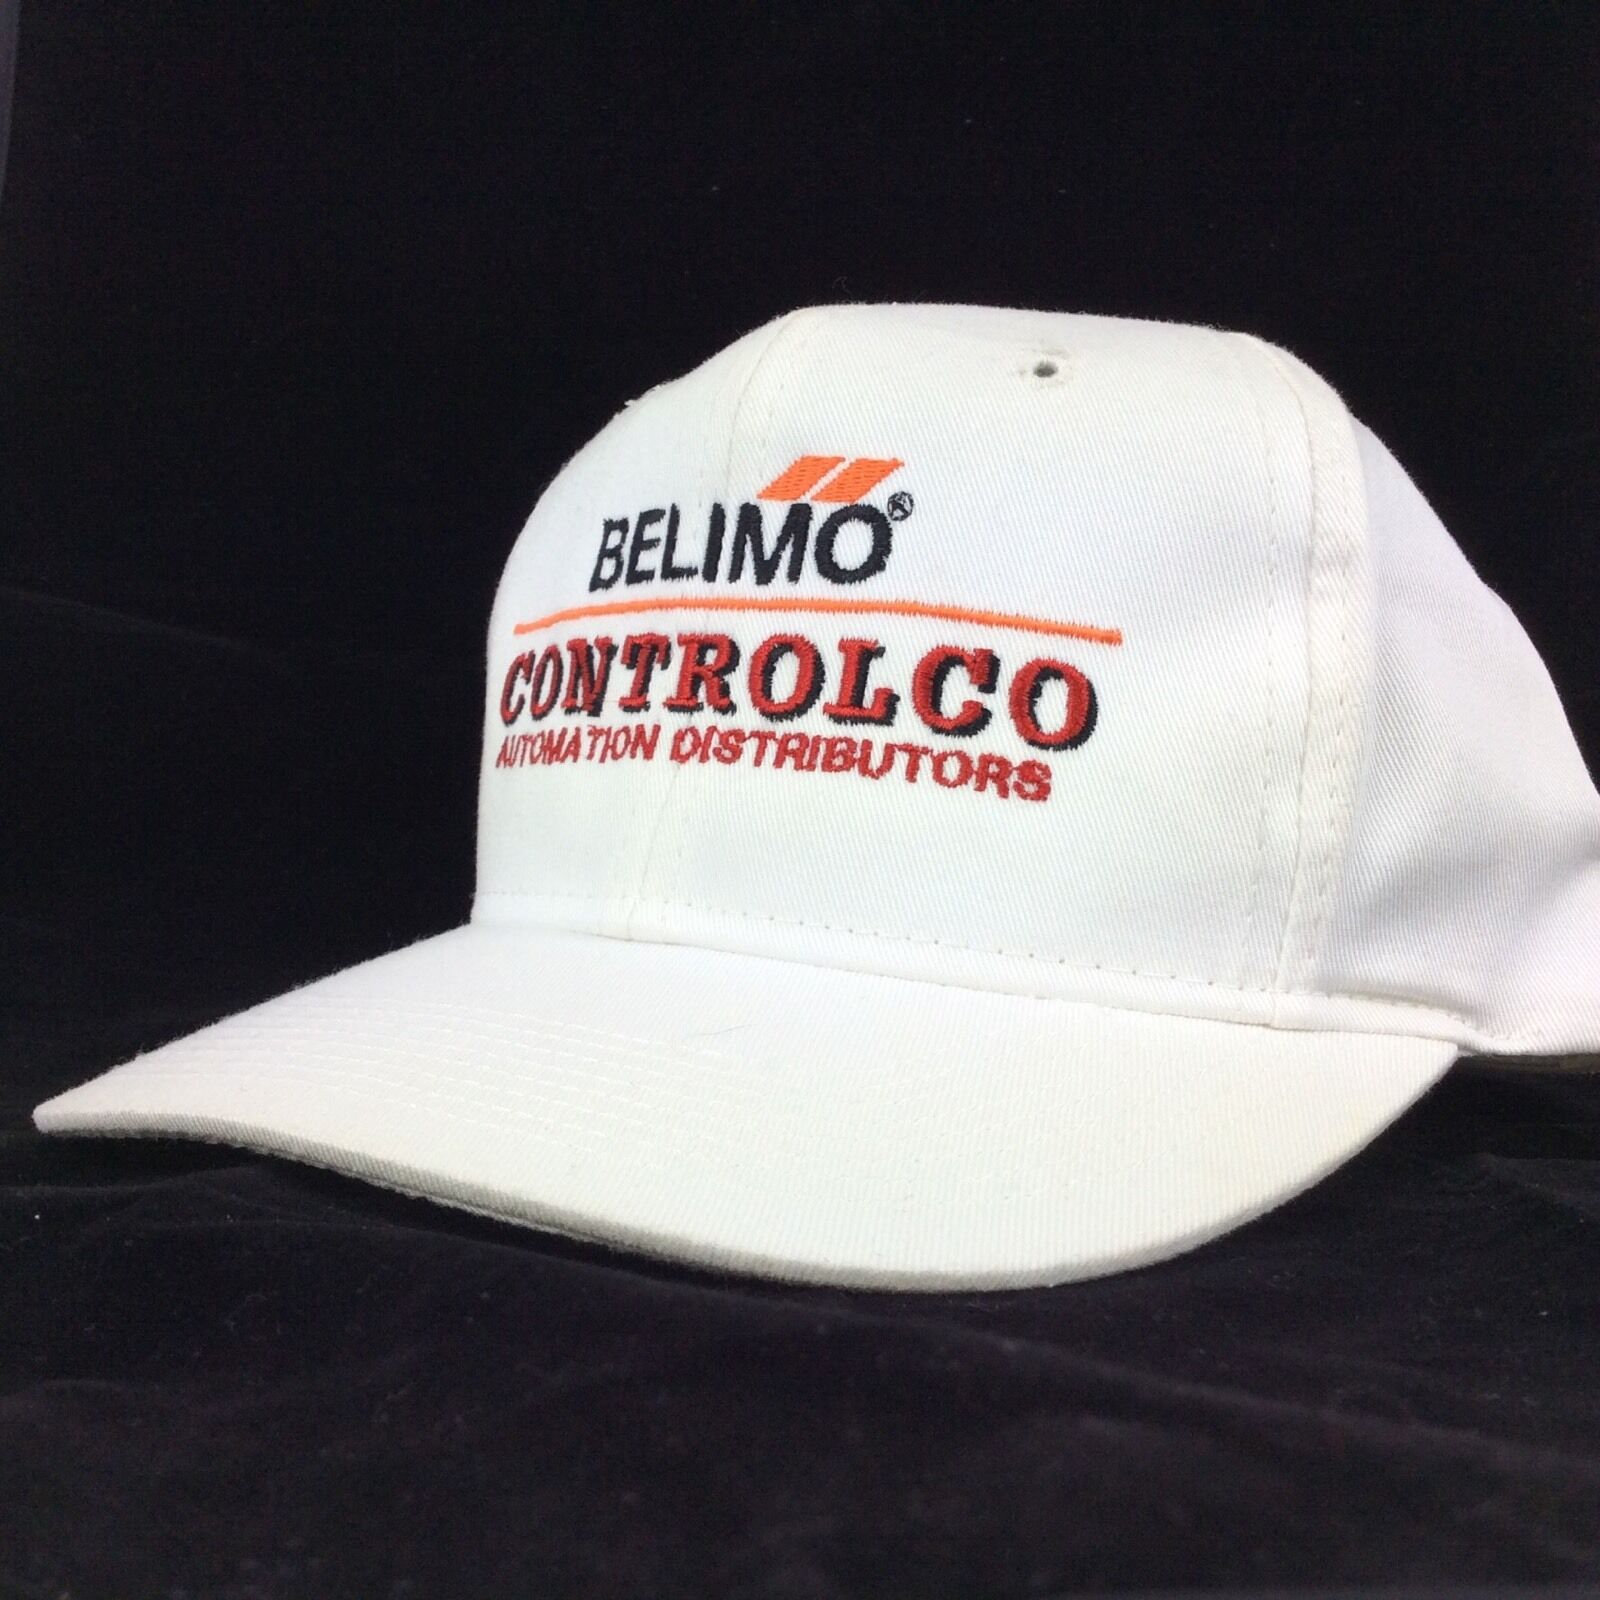 BELIMO BELIMO BELIMO CONTROLCO Automation Distributors White Baseball Cap Hat Snapback 076c68